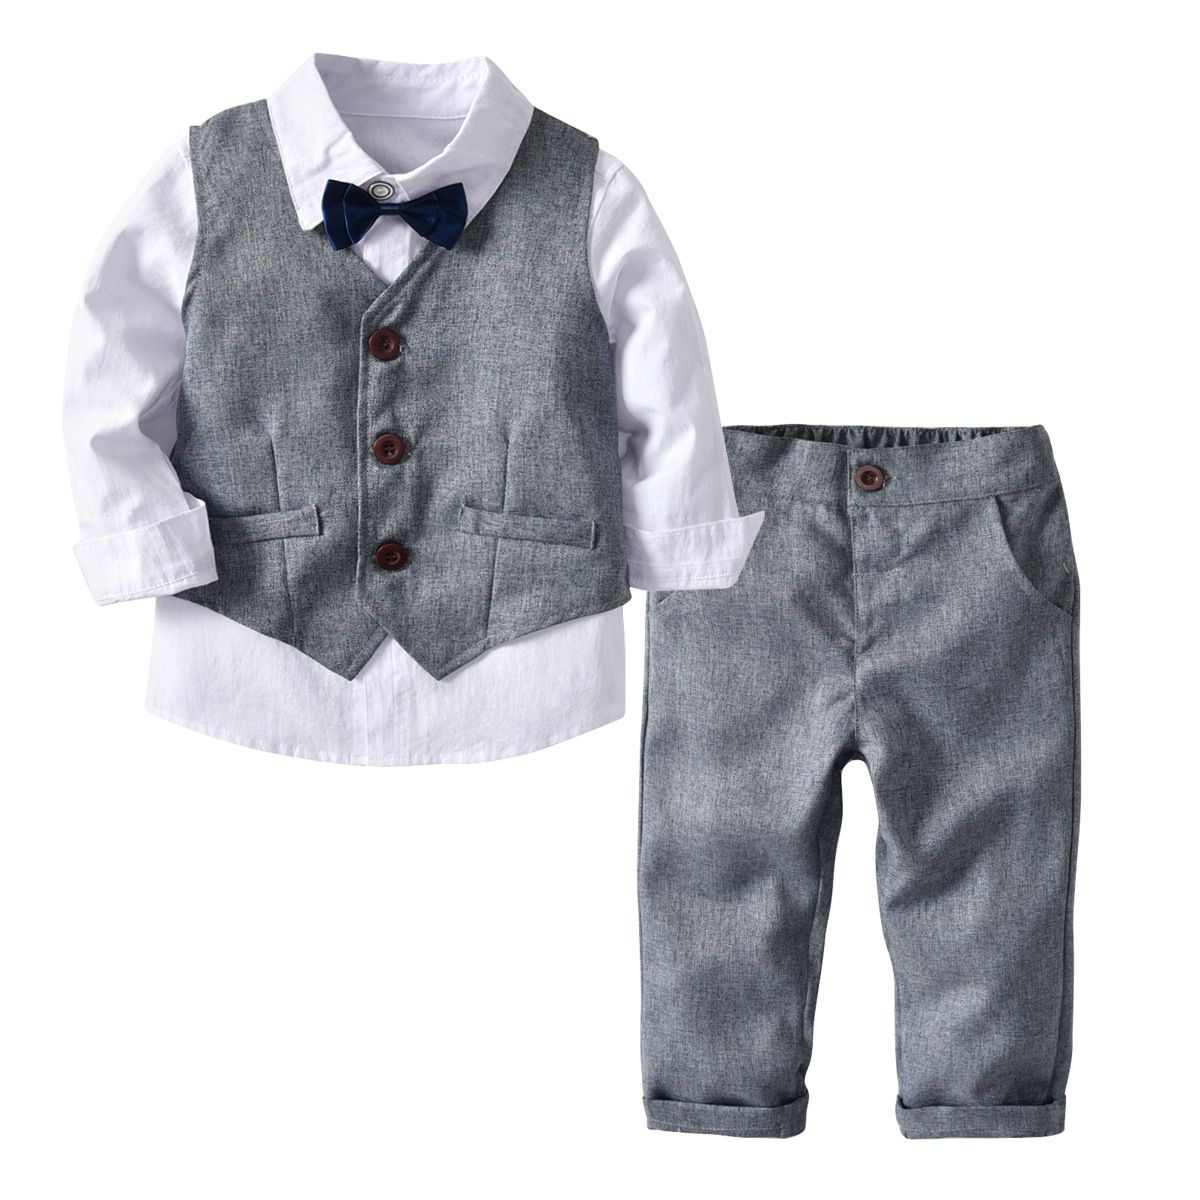 Boys' Clothing Children Clothing Gentleman Kids Toddler Infant Baby Boys Formal Suit 4pcs Set Clothes H372 Drip-Dry